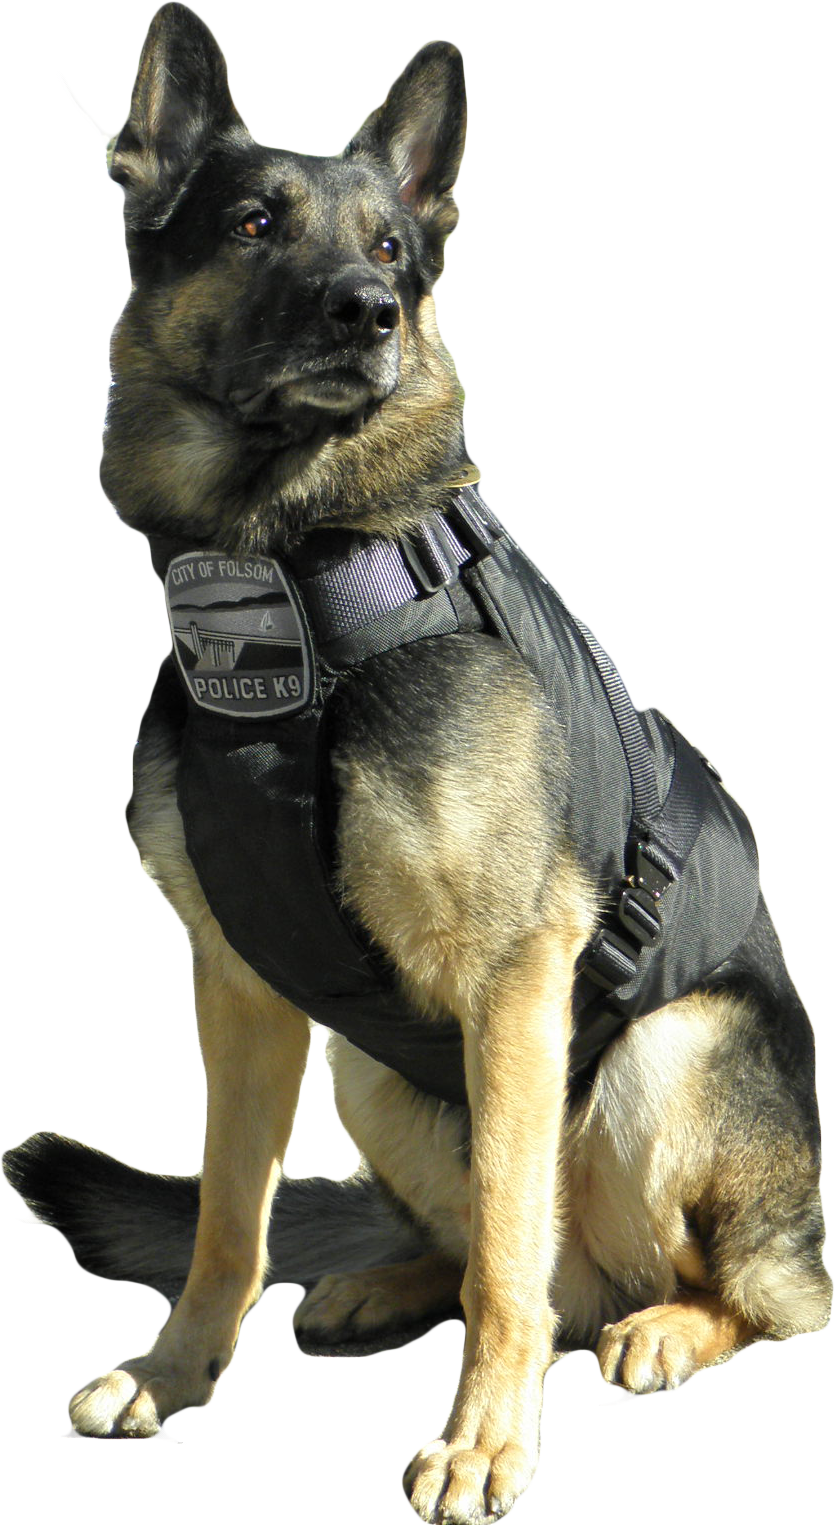 Police dog png. Hounds on working leashes